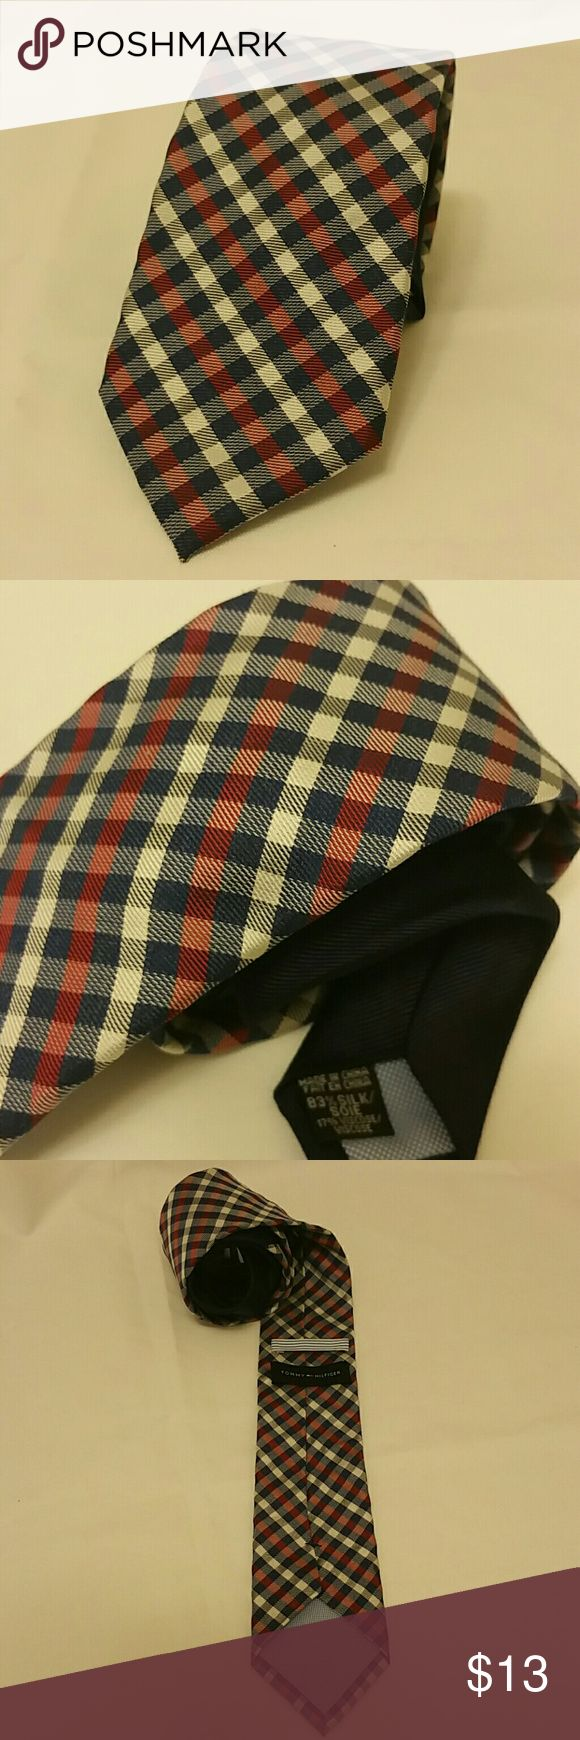 Tommy Hilfiger Tailored Collection Classic Tie -Classic width plaid tie -Blue/Red/White -83% Silk, 17% Viscose Tommy Hilfiger Accessories Ties